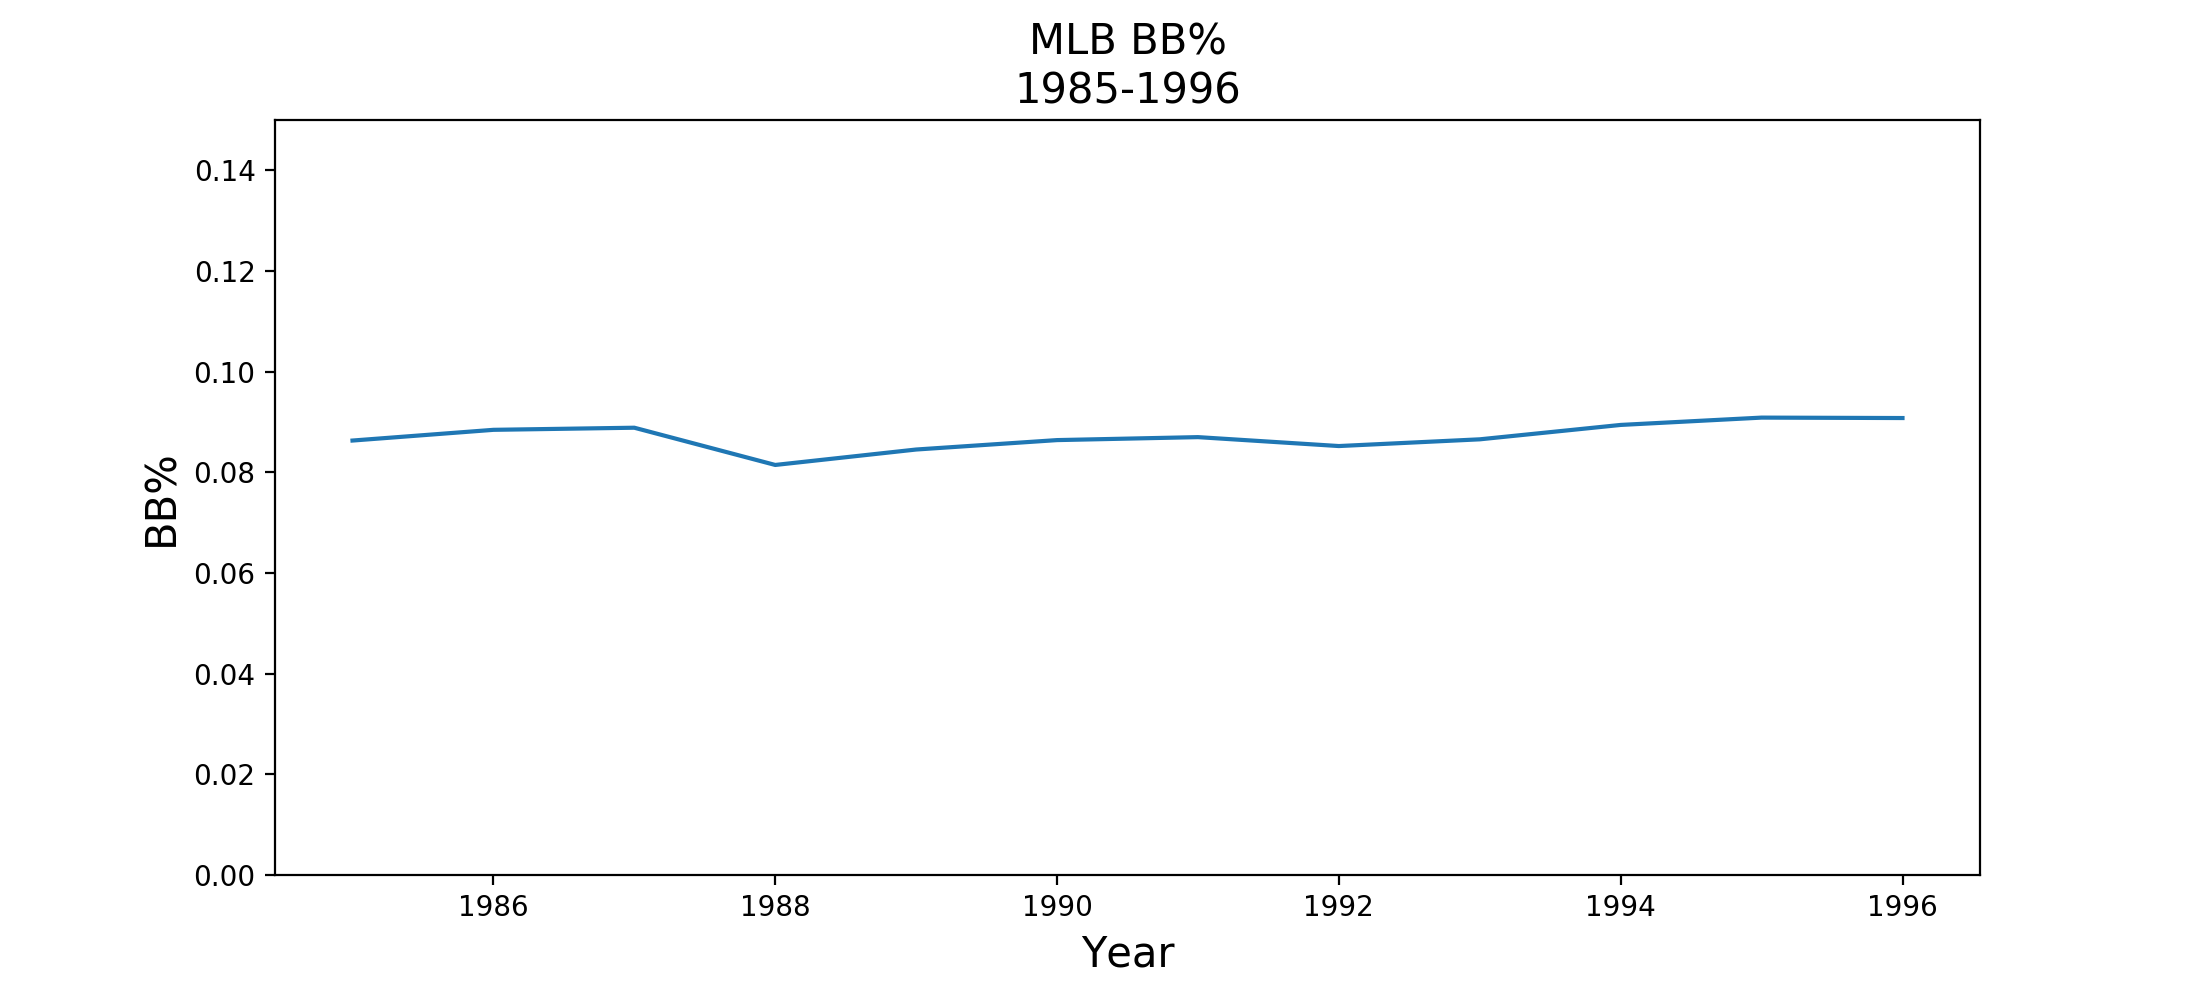 mlb-bb-rate